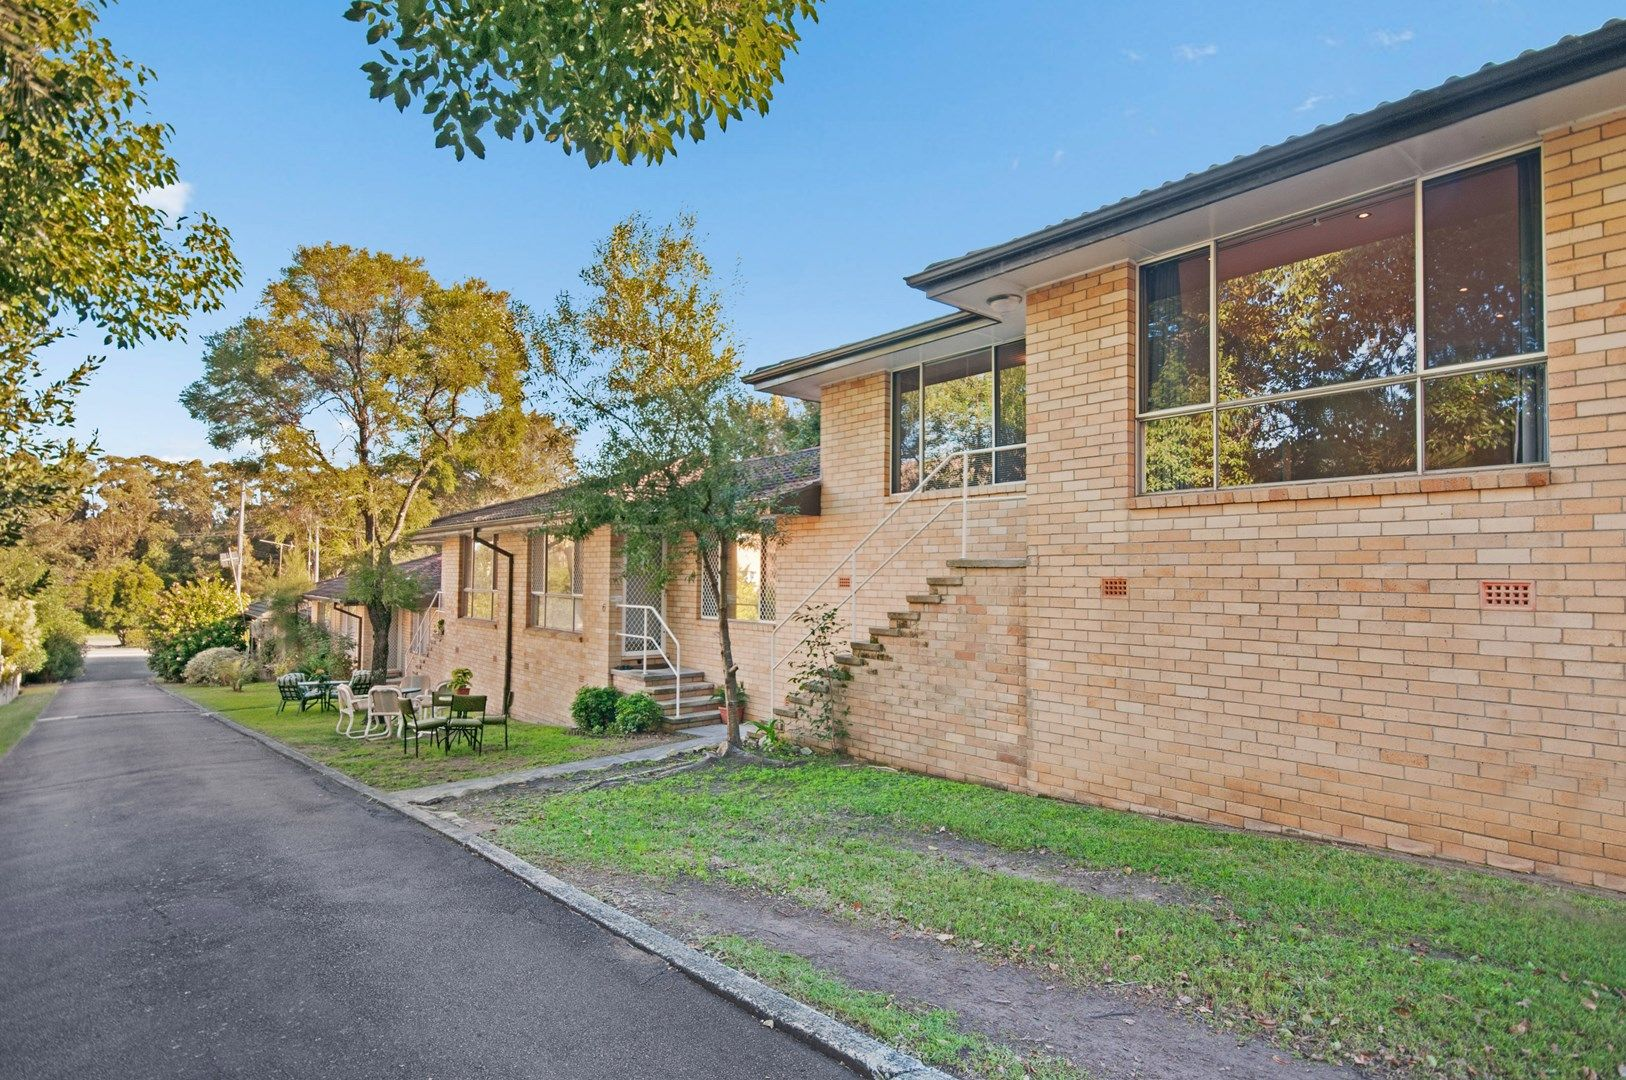 8/33 Central Coast Highway, West Gosford NSW 2250, Image 0